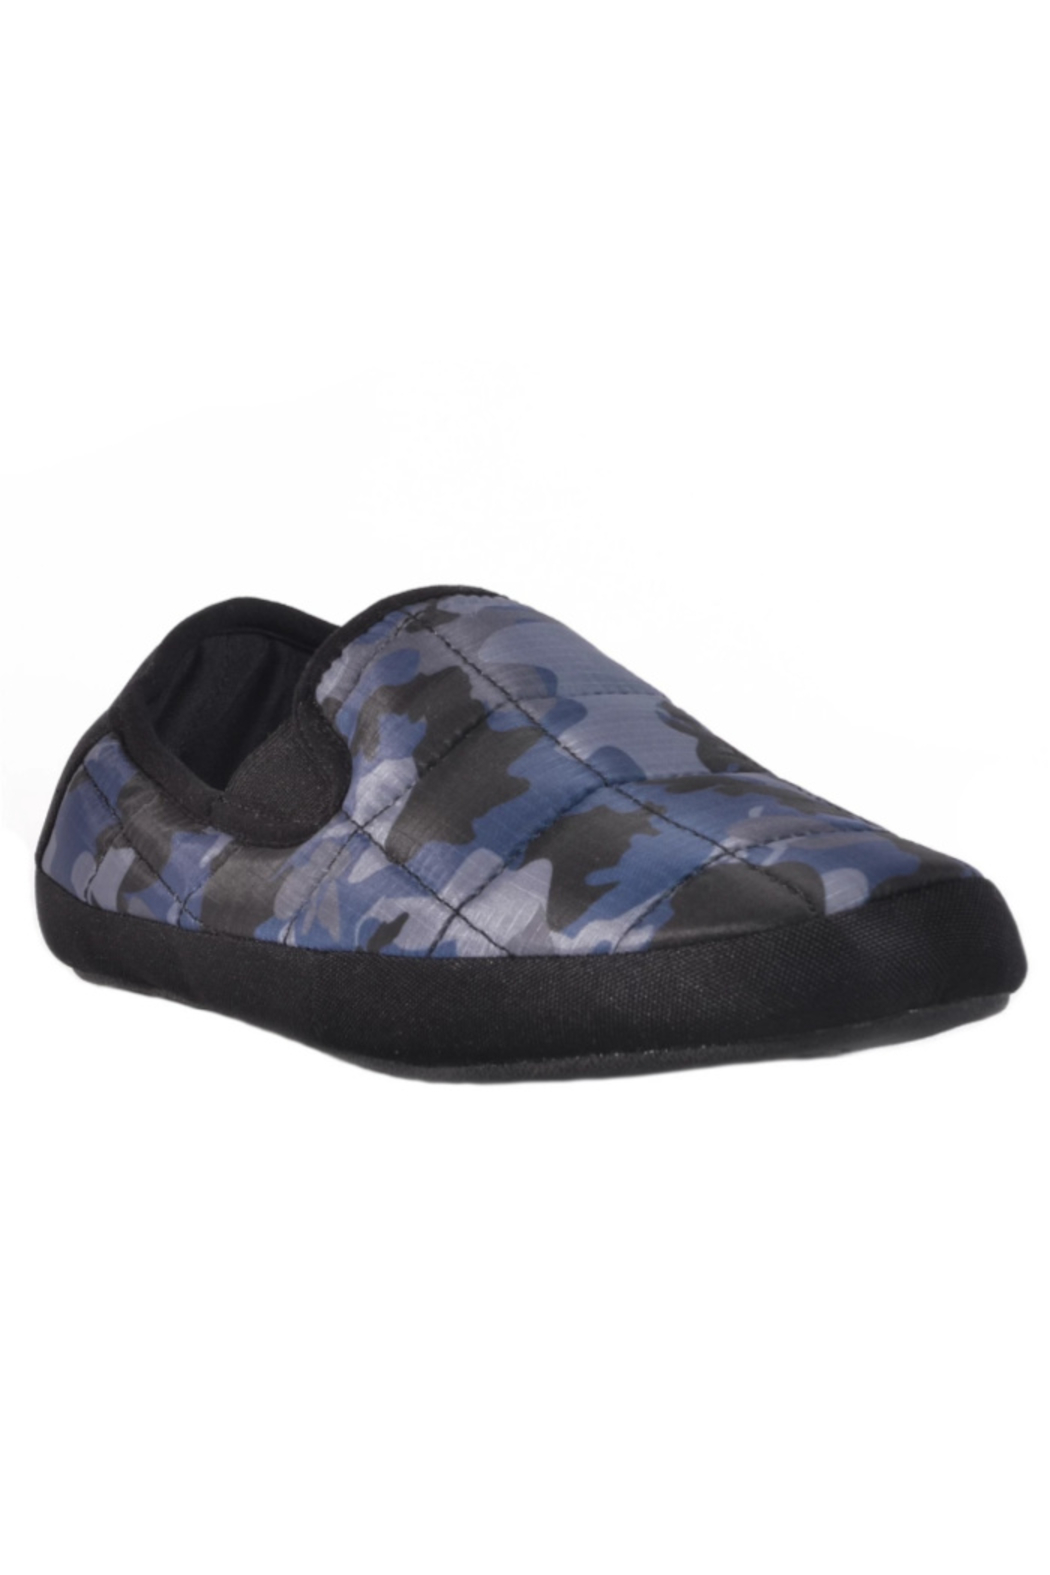 Coma Toes Men's  Malmoes Slippers - Front Cropped Image